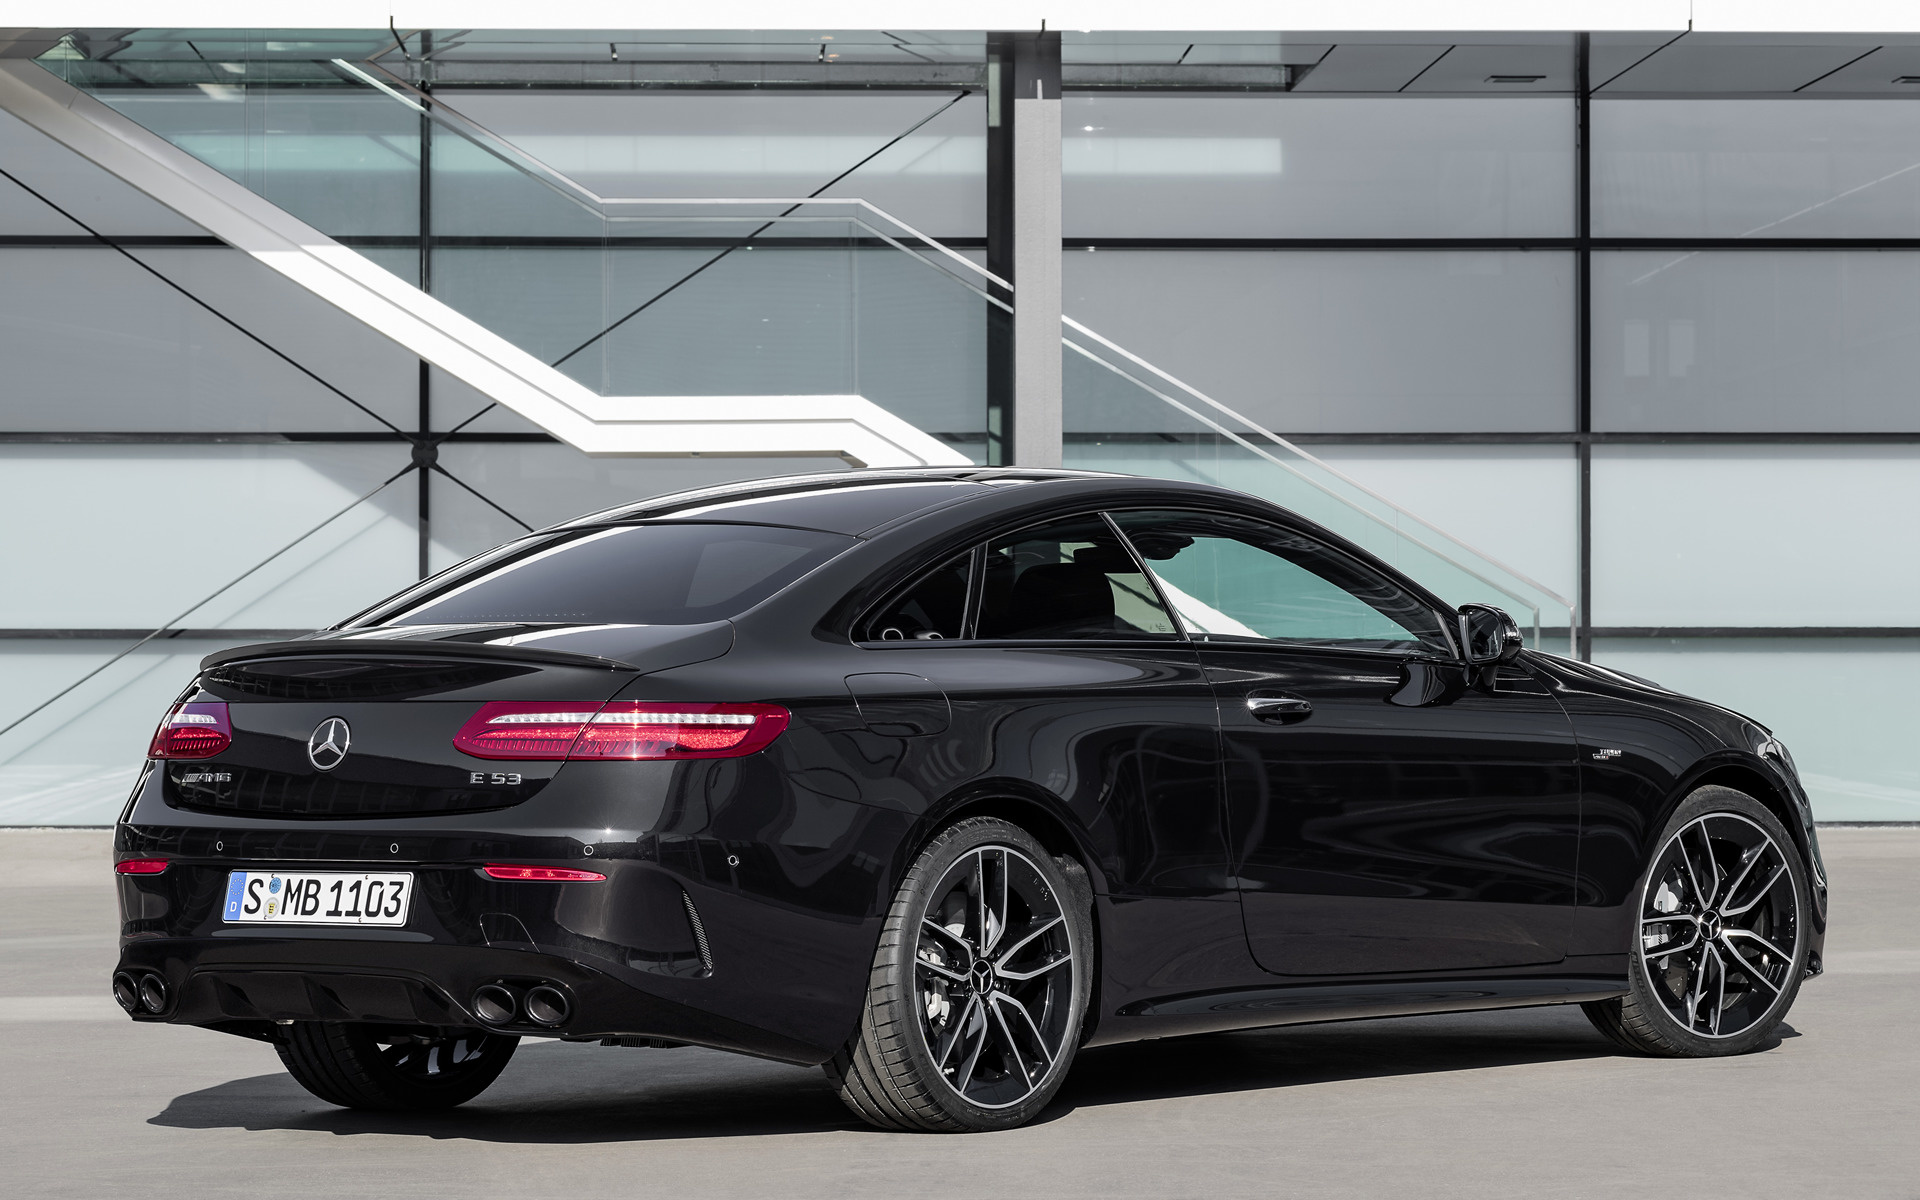 2018 Mercedes Amg E 53 Coupe Wallpapers And Hd Images